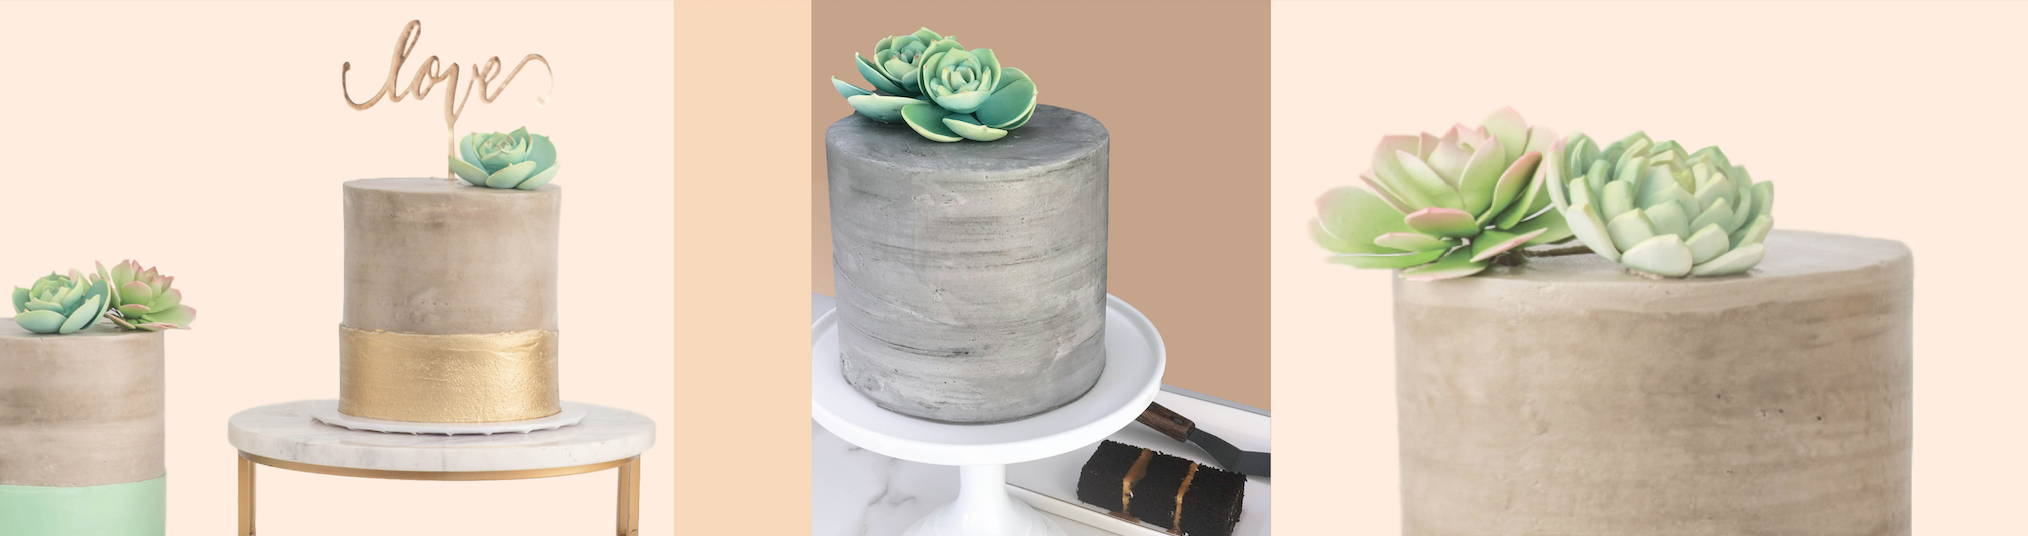 Succulent Custom Cakes and Cupcakes